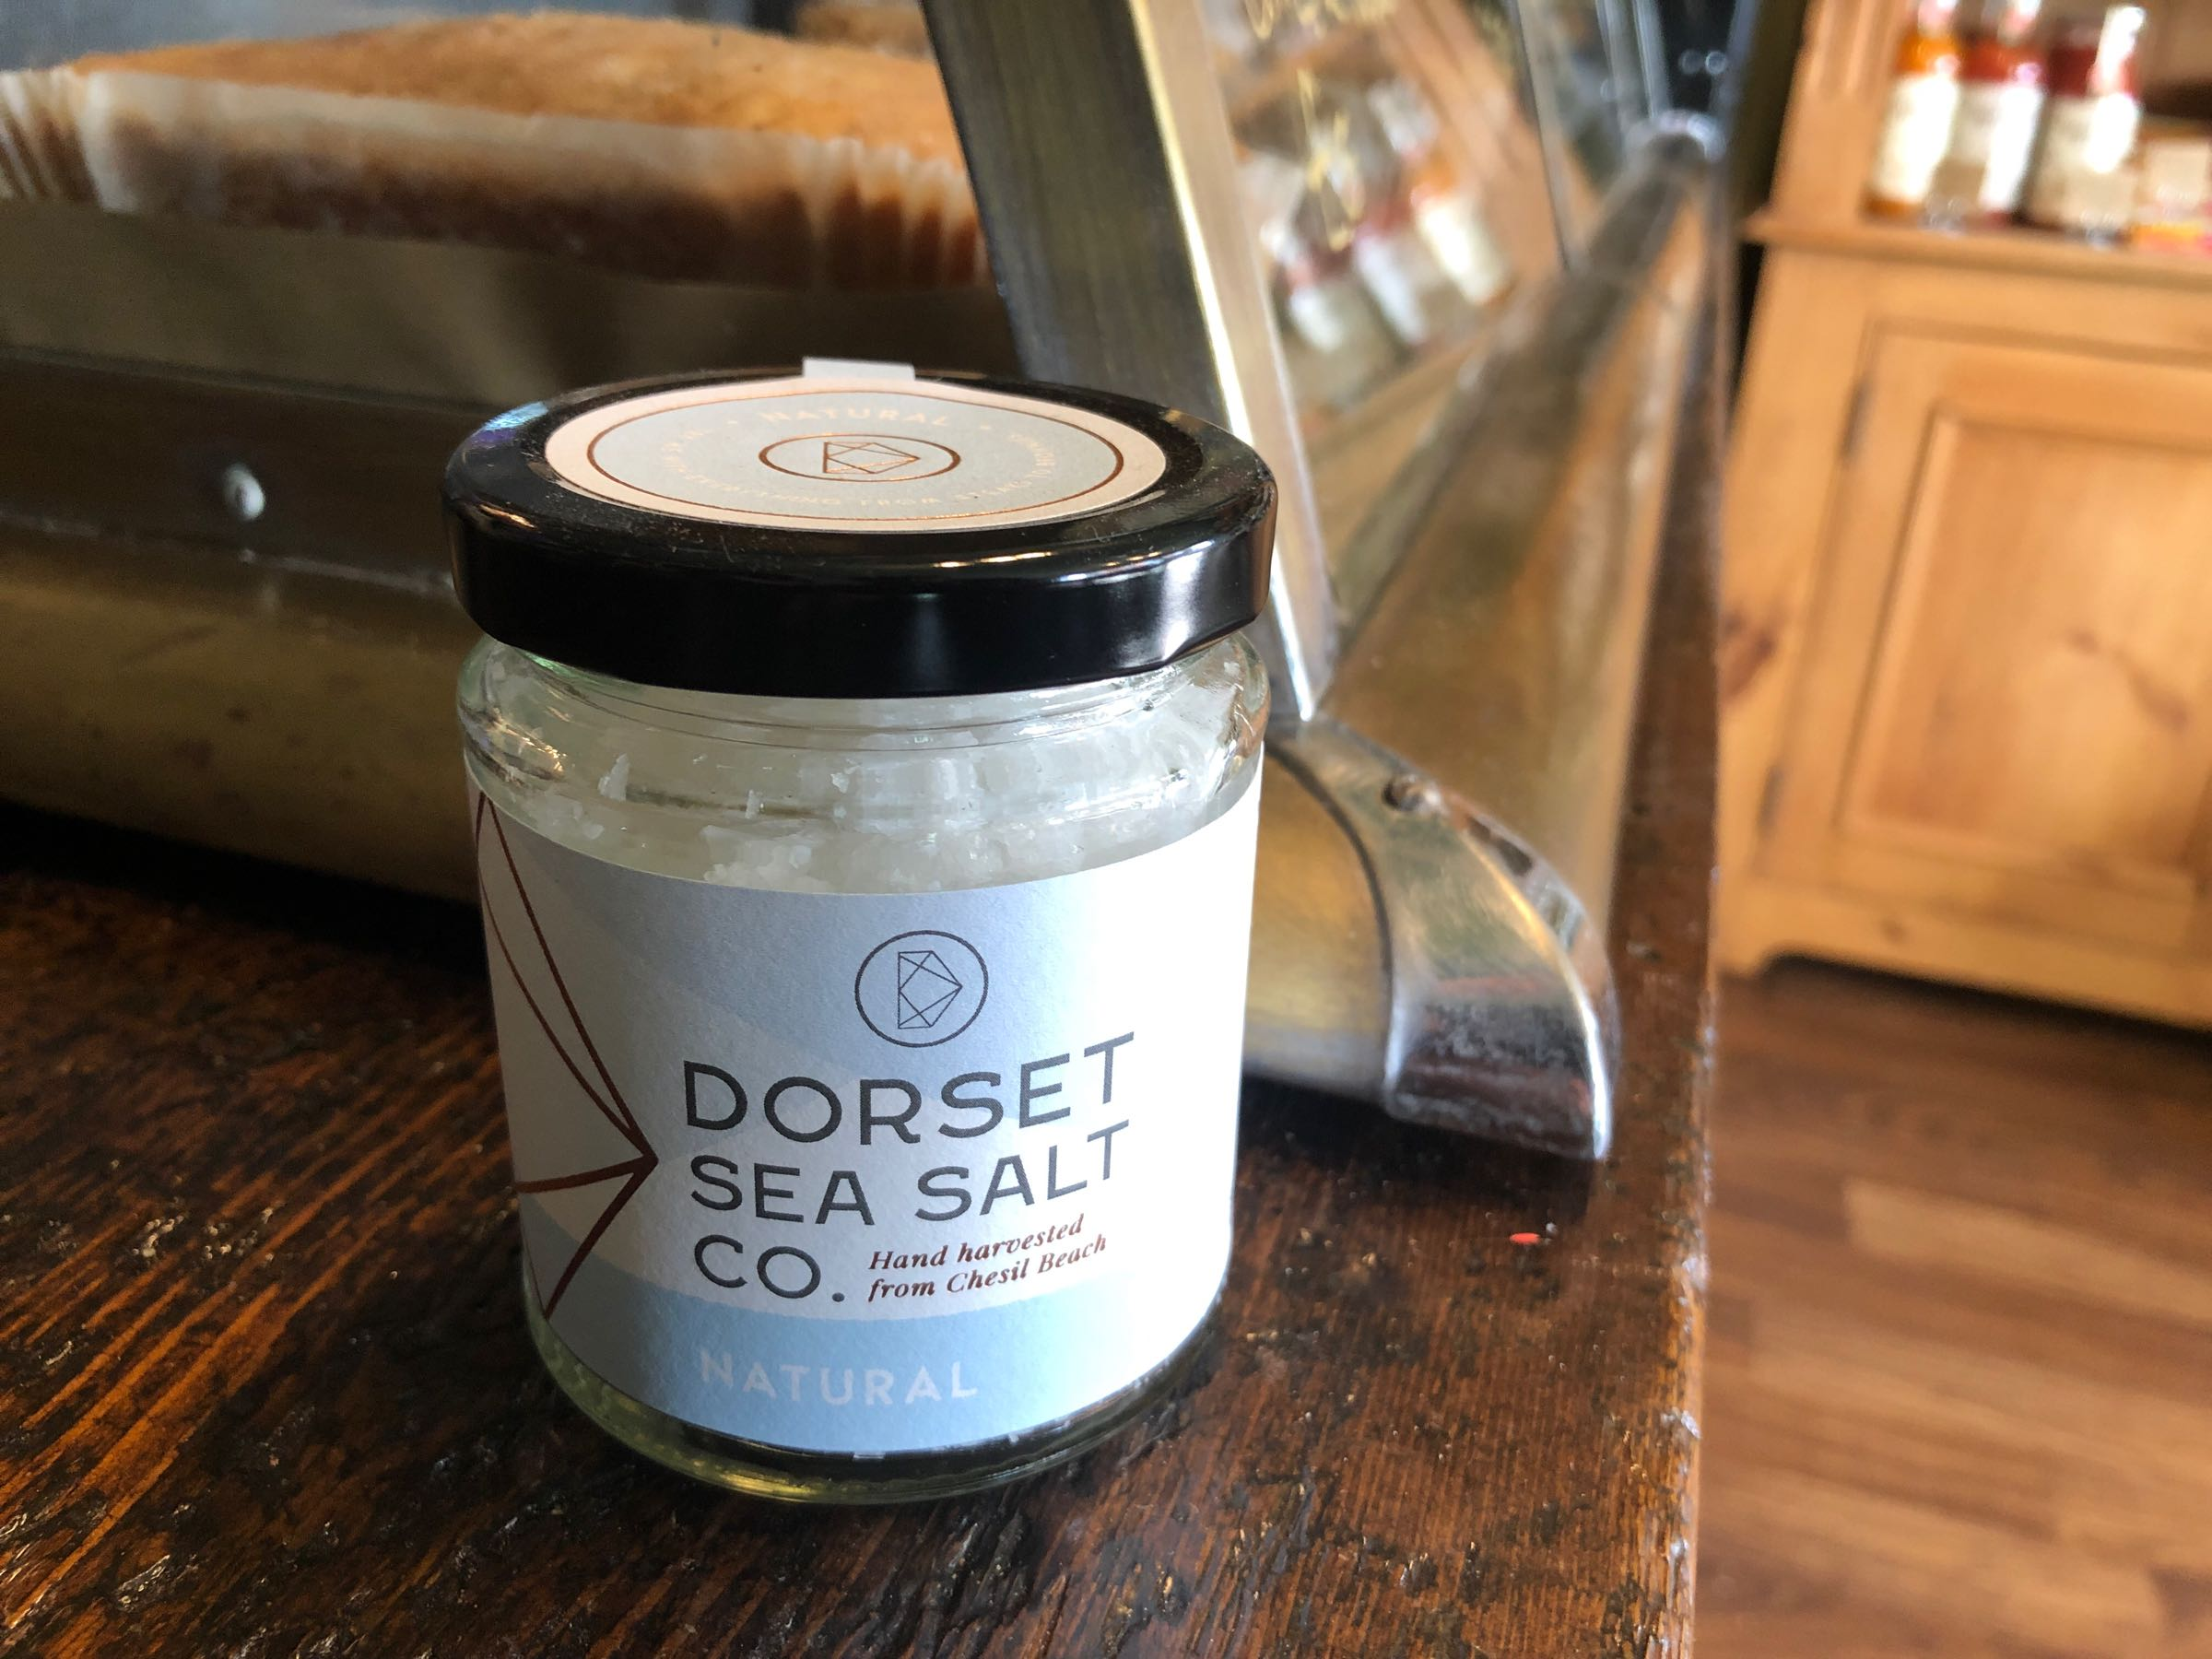 Dorset Sea Salt 125g Jar Natural Dorset Sea Salt